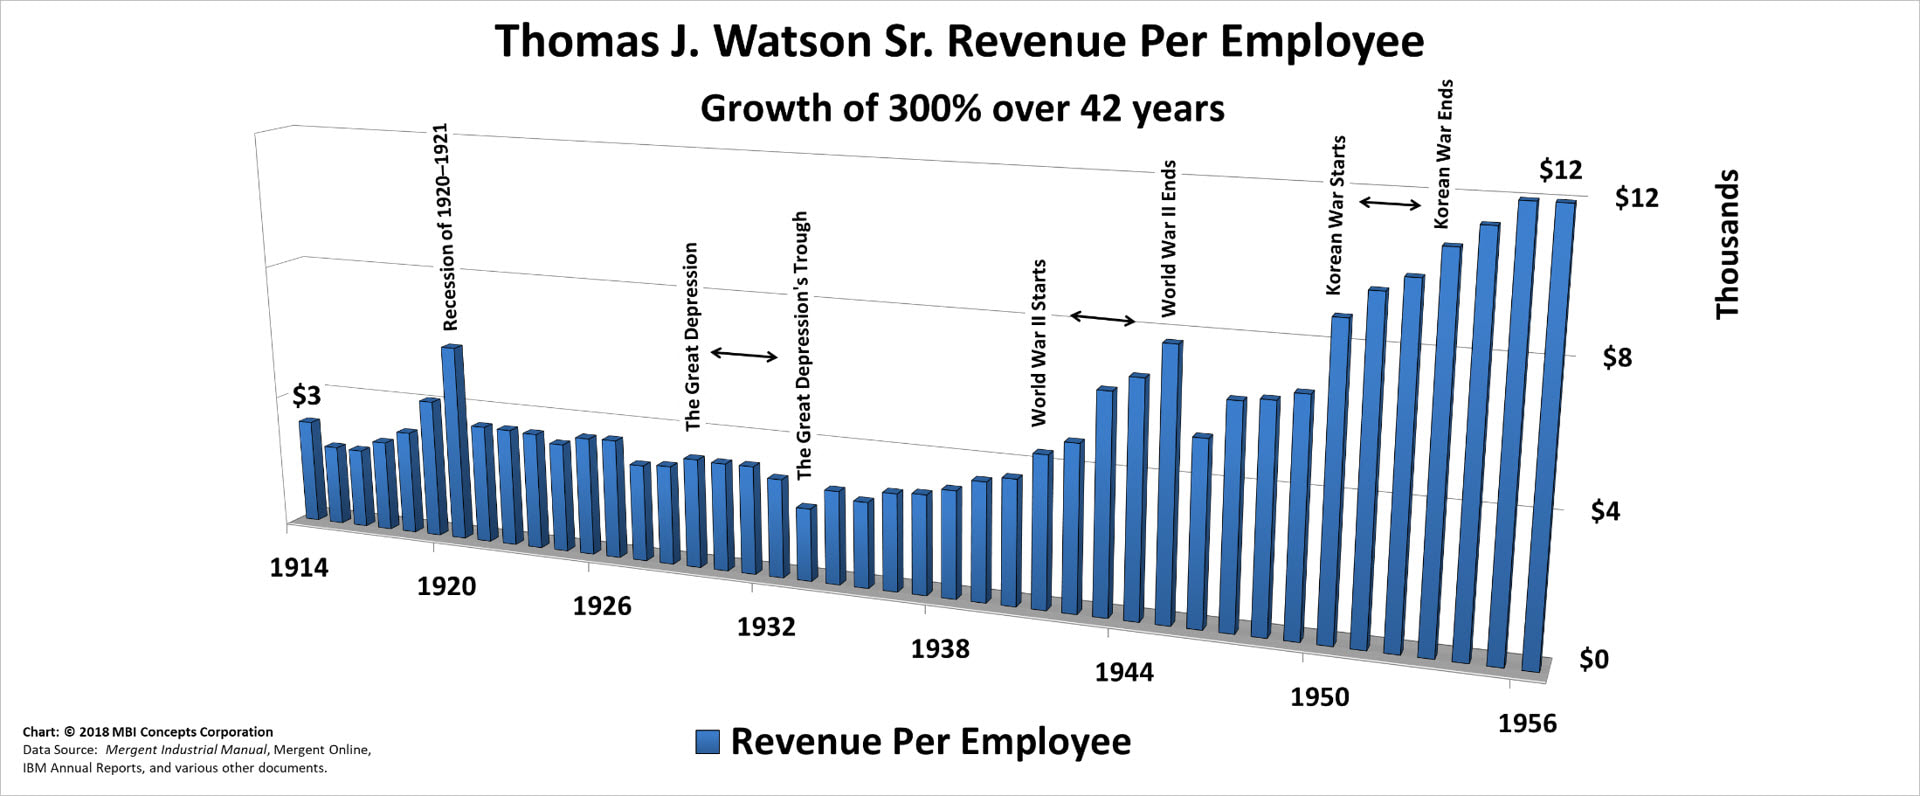 Bar chart of Thomas J. Watson Sr.'s Yearly Revenue per Employee over his 42 years as IBM's CEO from 1914 to 1956.